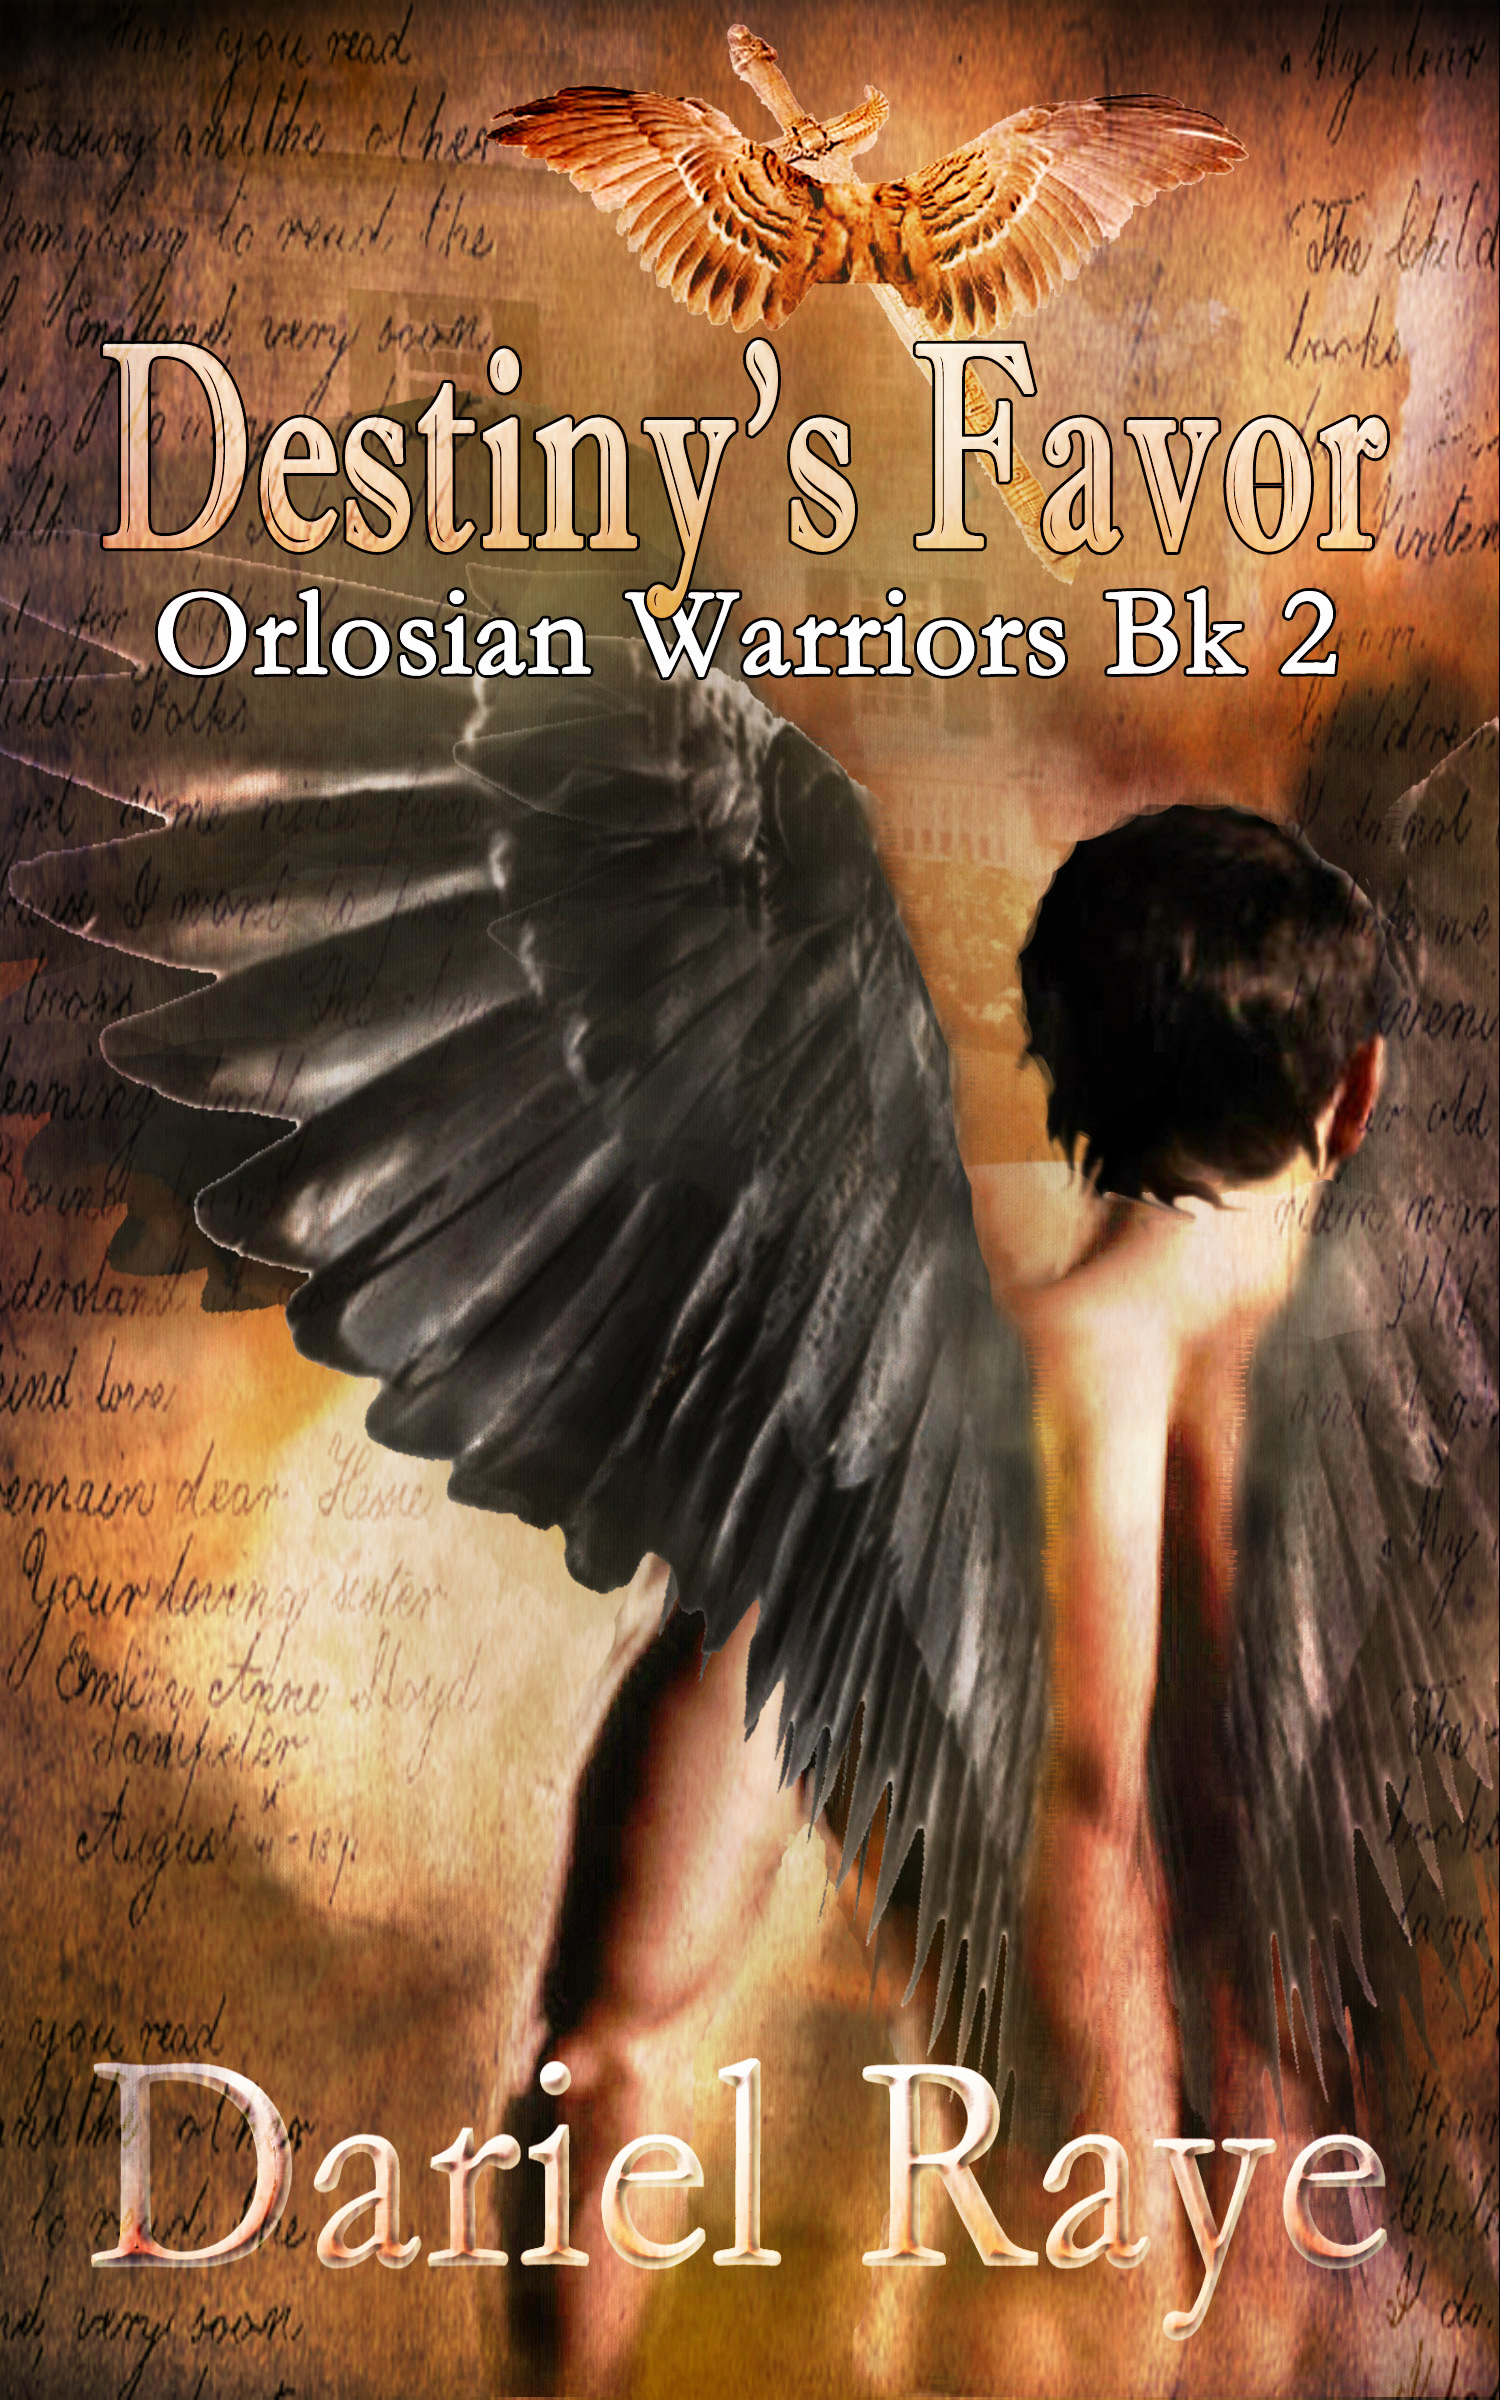 Destiny's Favor: Orlosian Warriors Bk.2